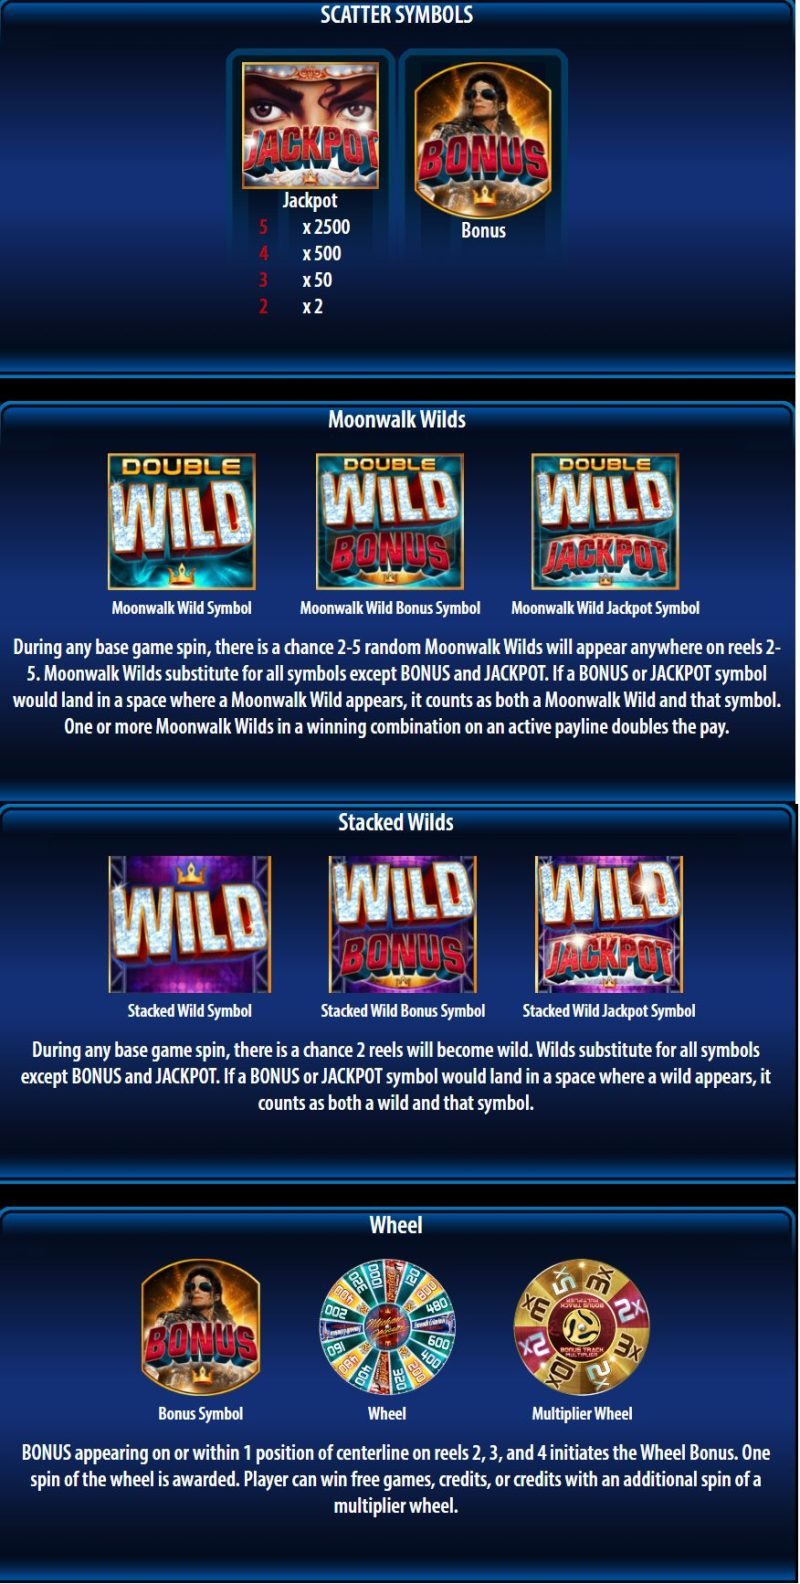 These a screencap of the digital slot machine (a.k.a . fruit machine) showing the various bonus features. You can read the details of these bonus features under the picture.